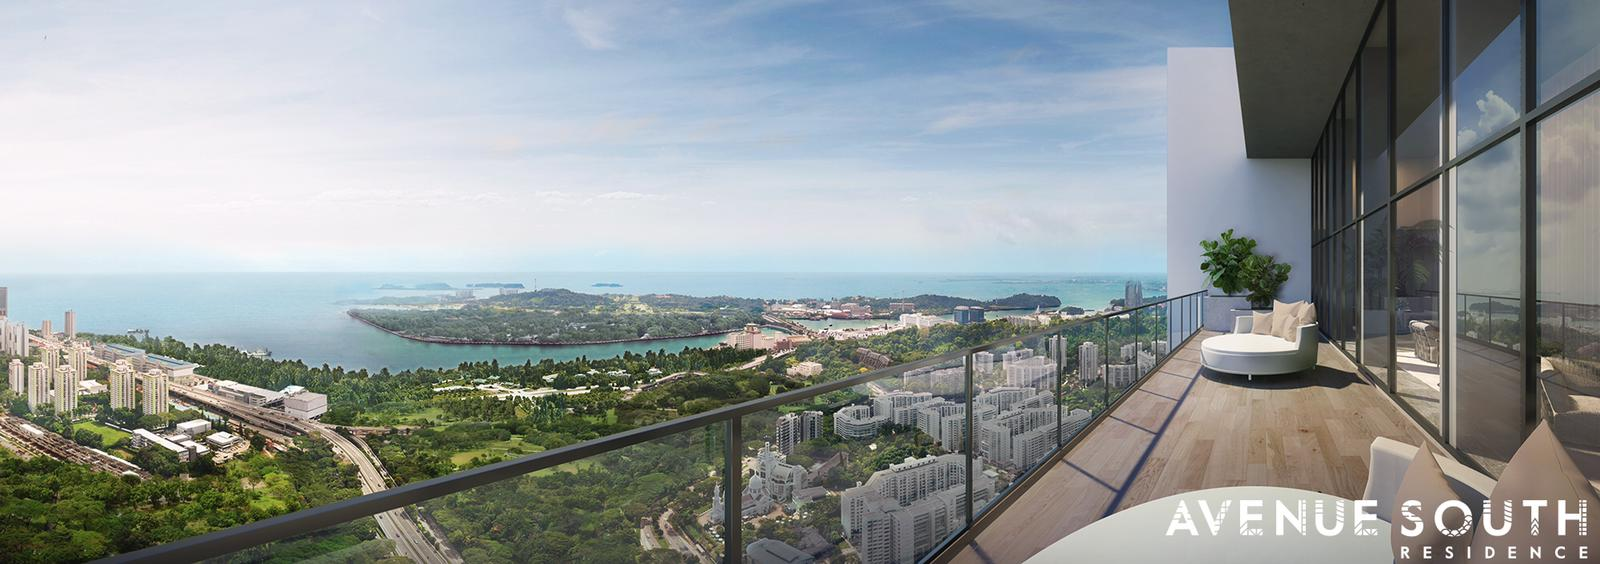 avenue-south-residences-high-floor-balcony-view-singapore